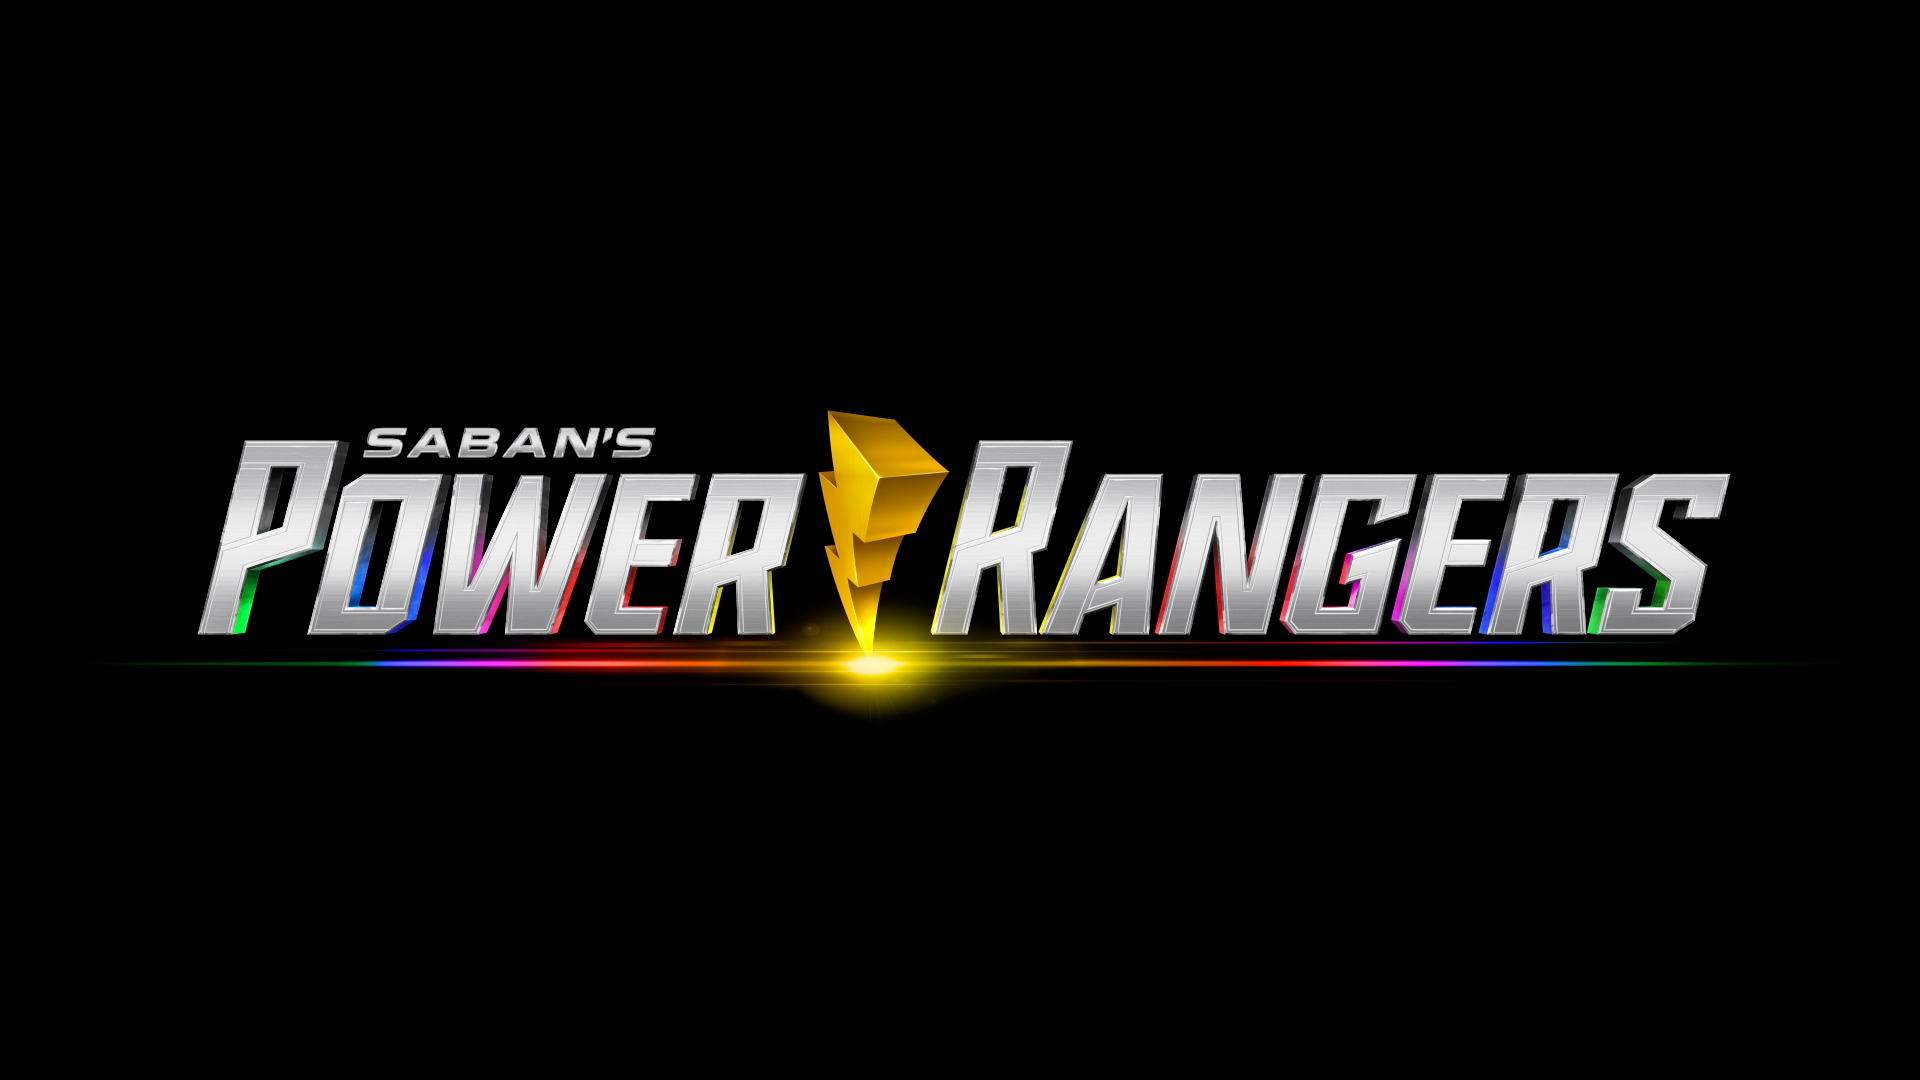 Hasbro to acquire saban brands power rangers and other hasbro to acquire saban brands power rangers and other entertainment assets business wire malvernweather Gallery